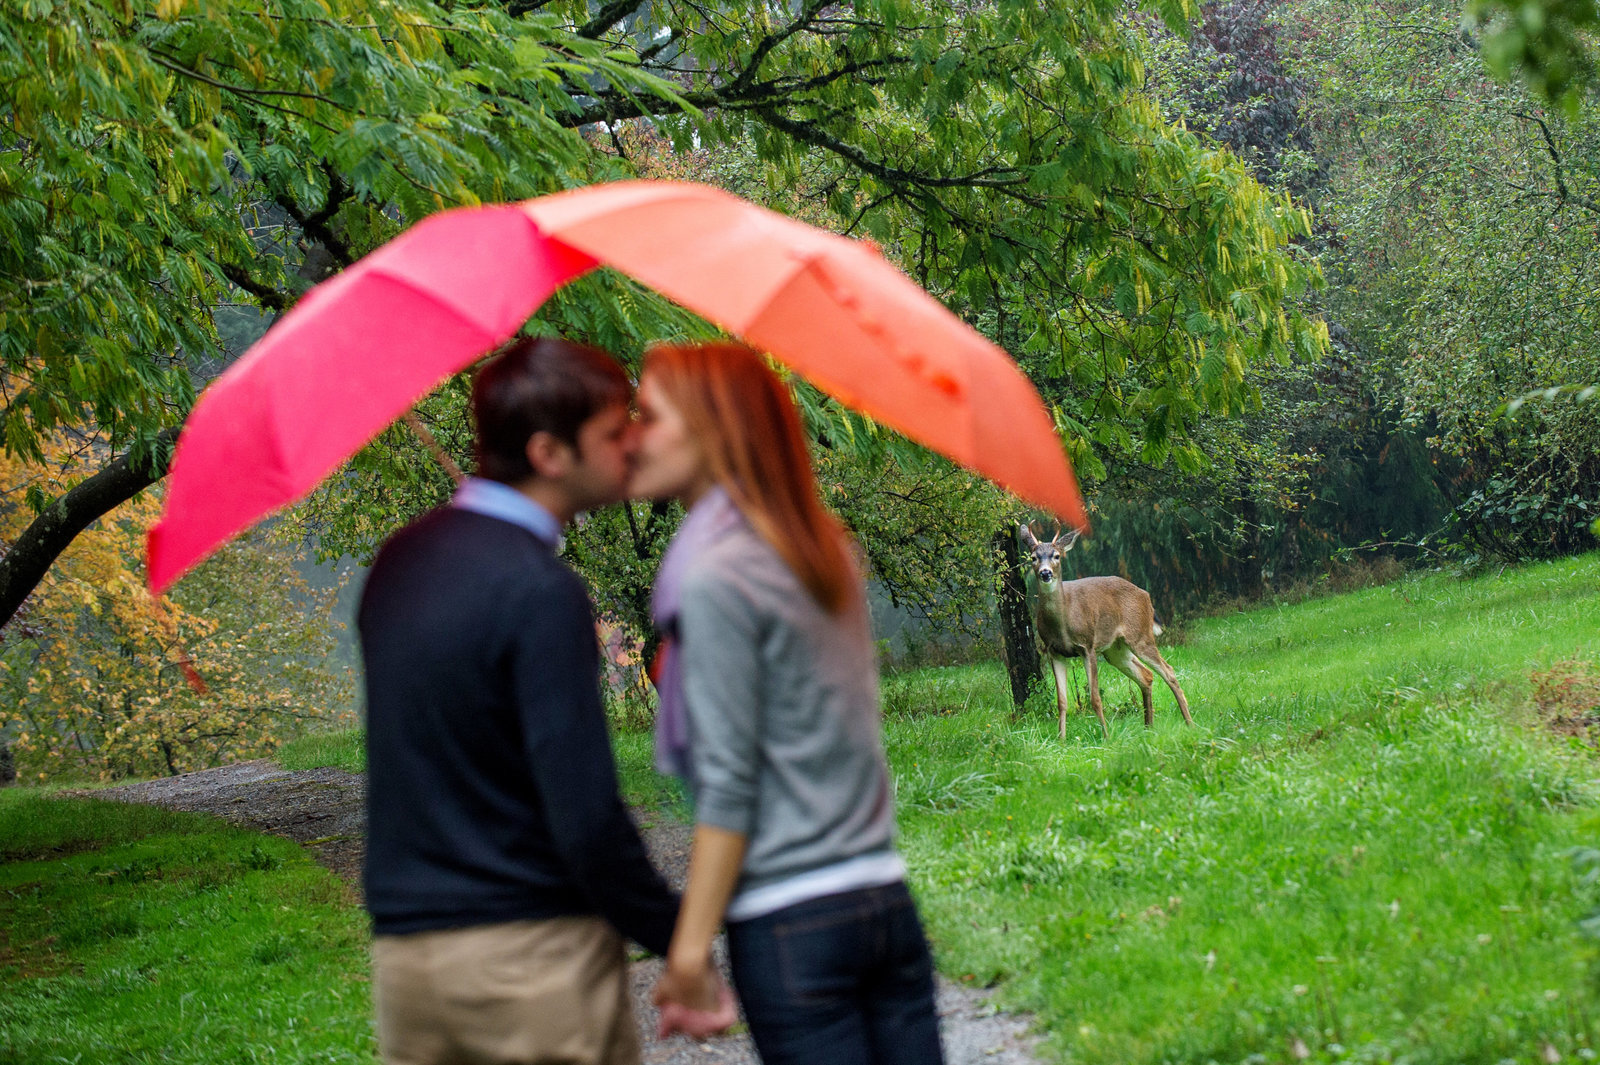 a couple kiss underneath colorful umbrellas as a deer looks on in the background for their engagement